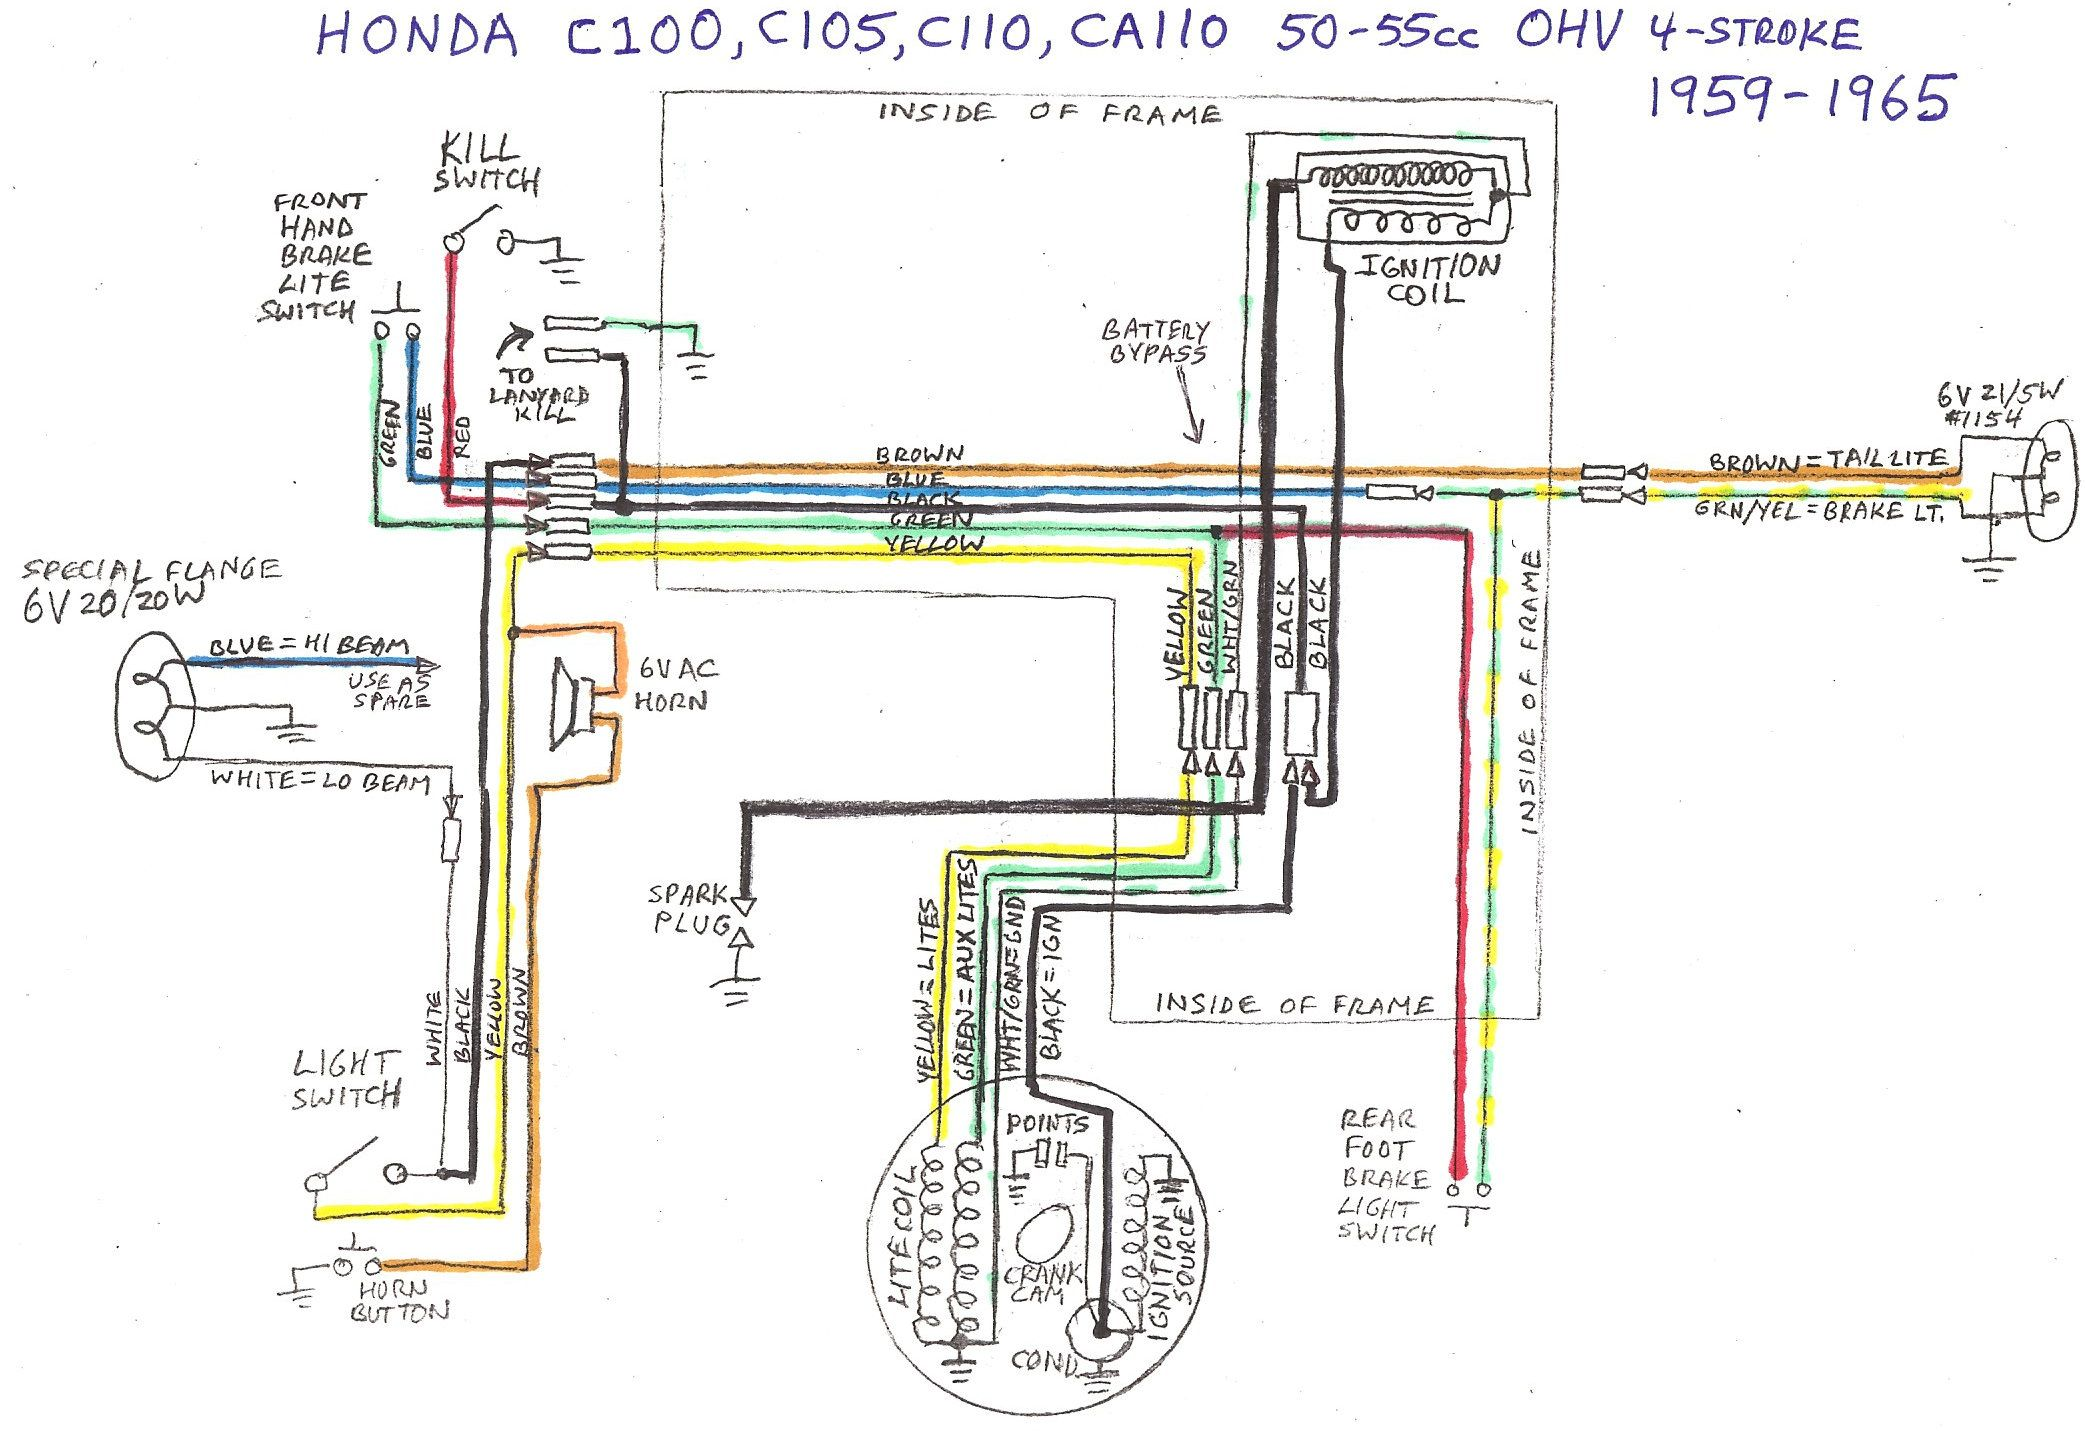 Honda C100 Wiring Diagram Jpg 2 085 1 431 Pixels With Images